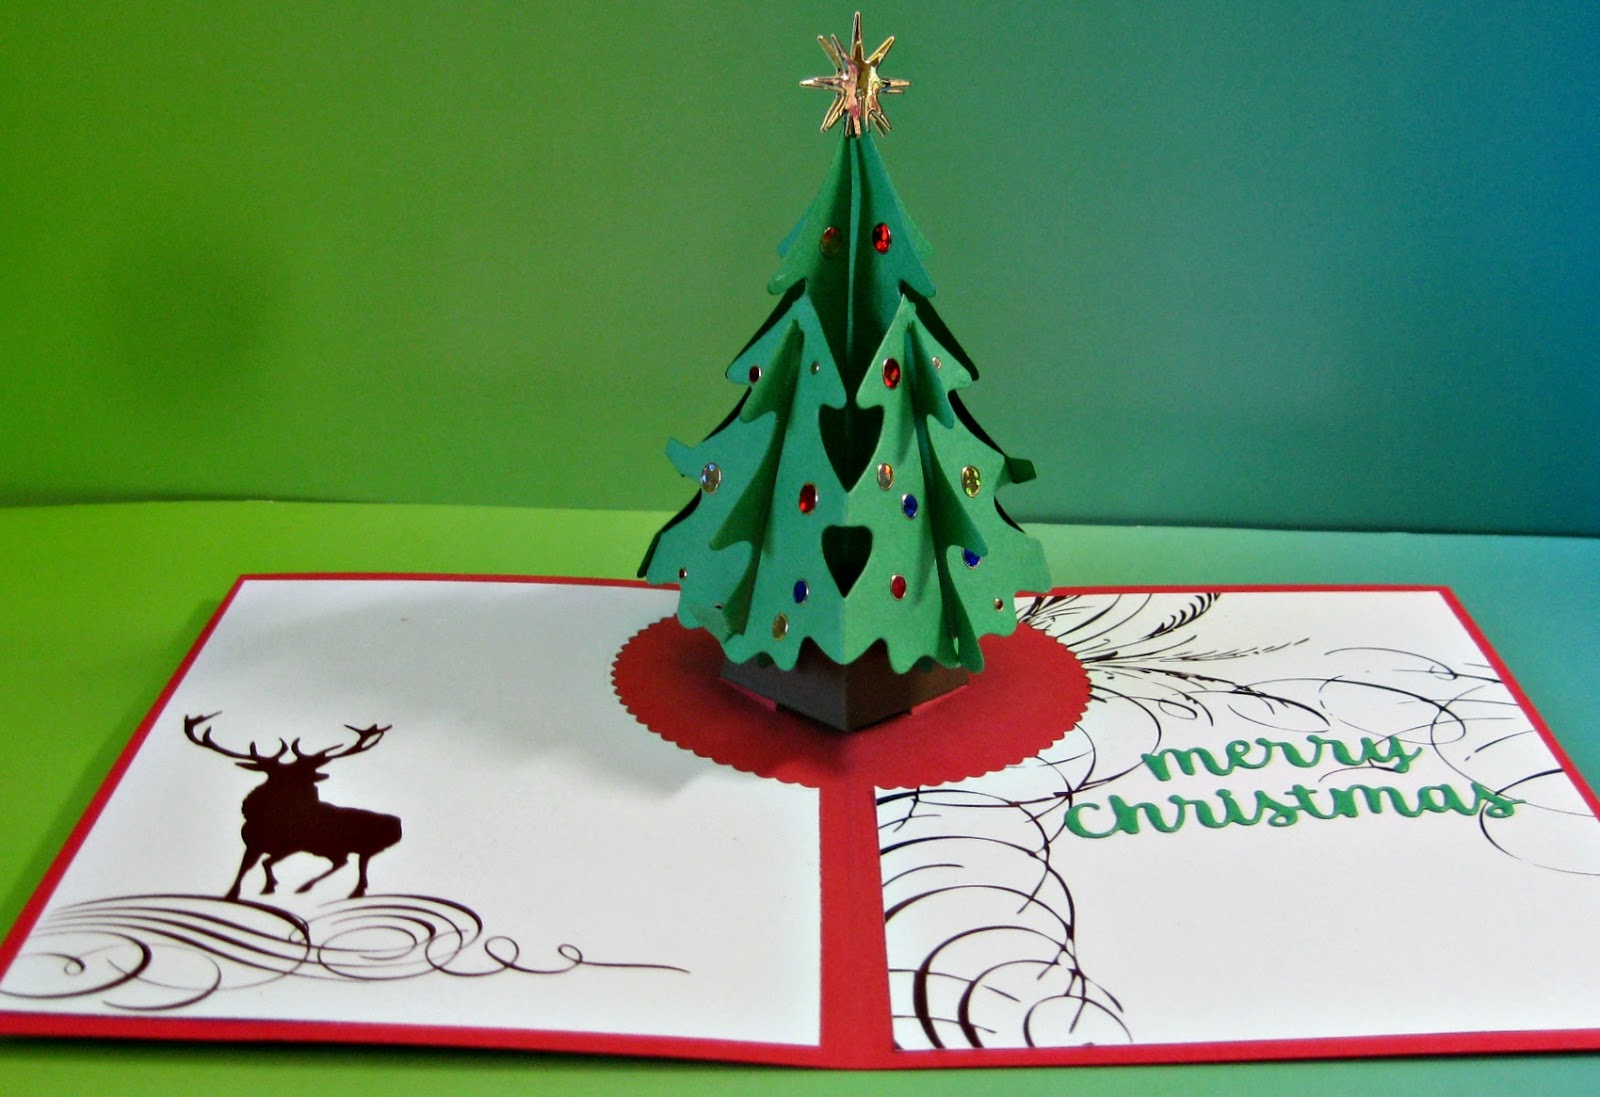 Karen's Kreative Kards: Another Pop Up Christmas Card With